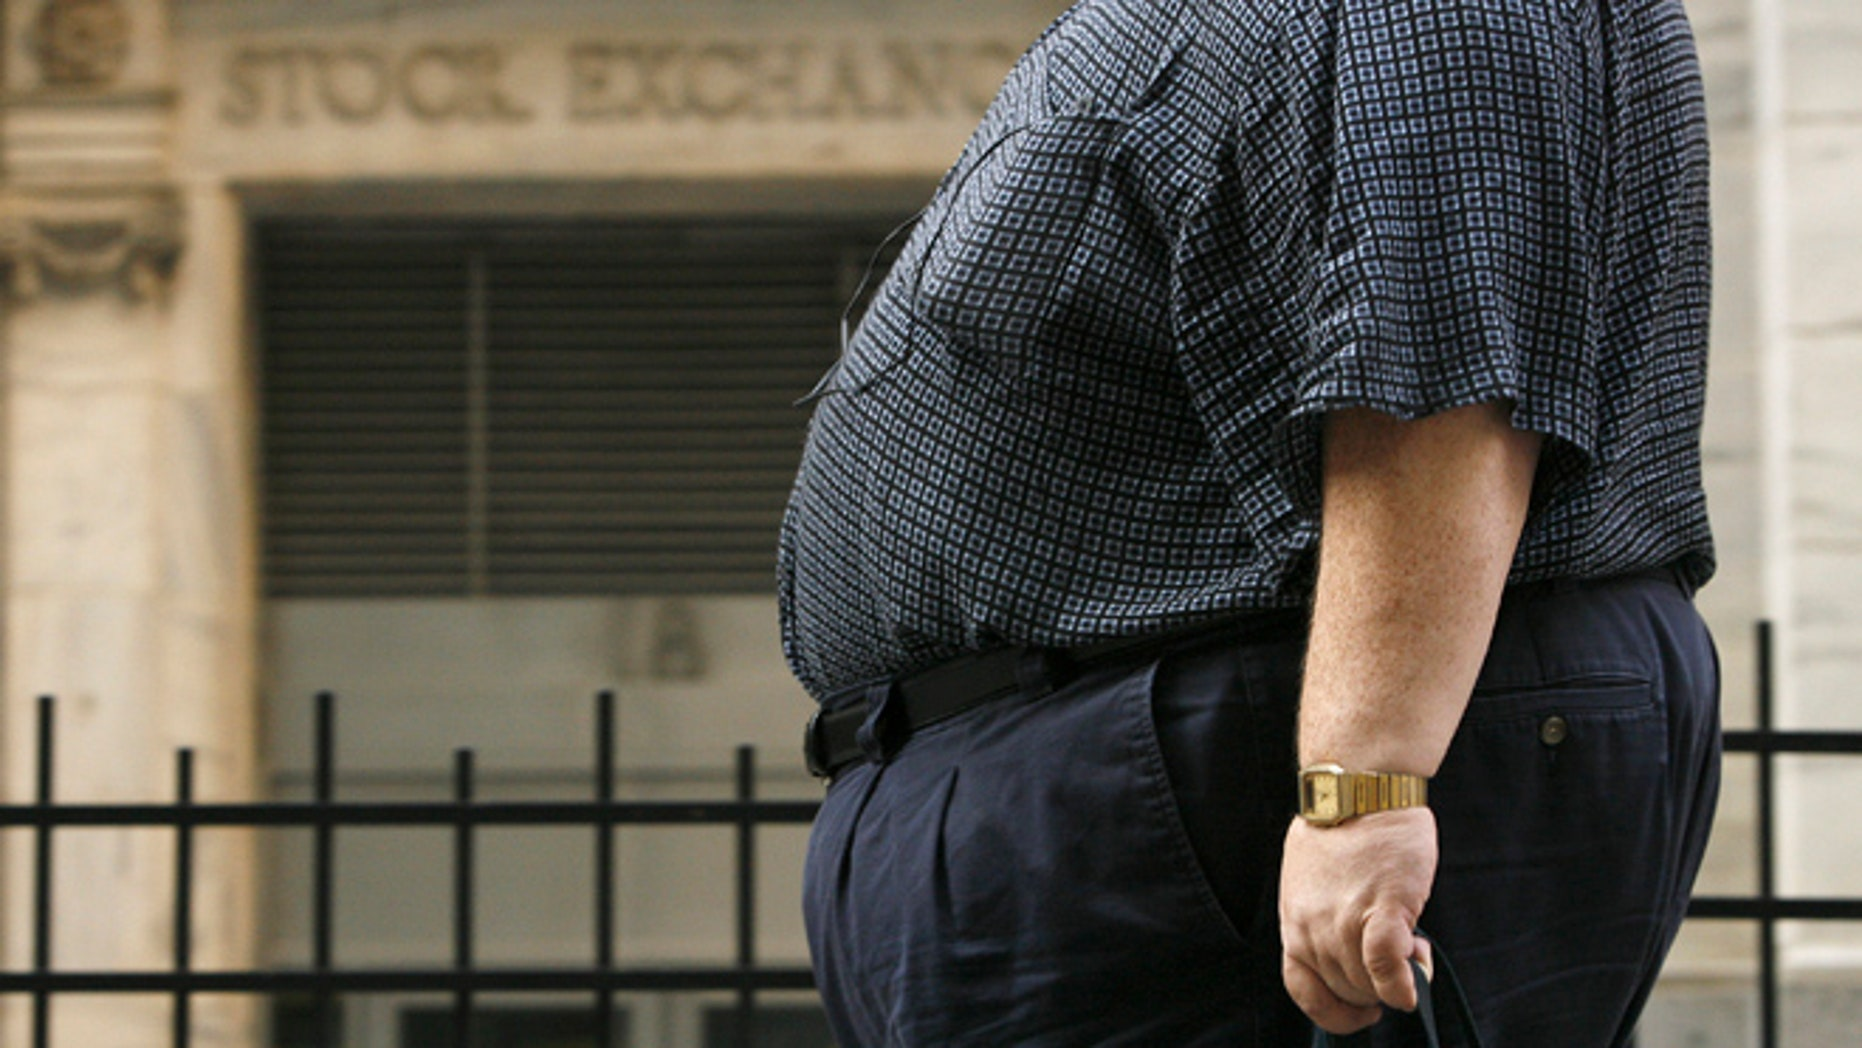 Aug. 17, 2009: A man walks past the New York Stock Exchange after trading hours in New York.